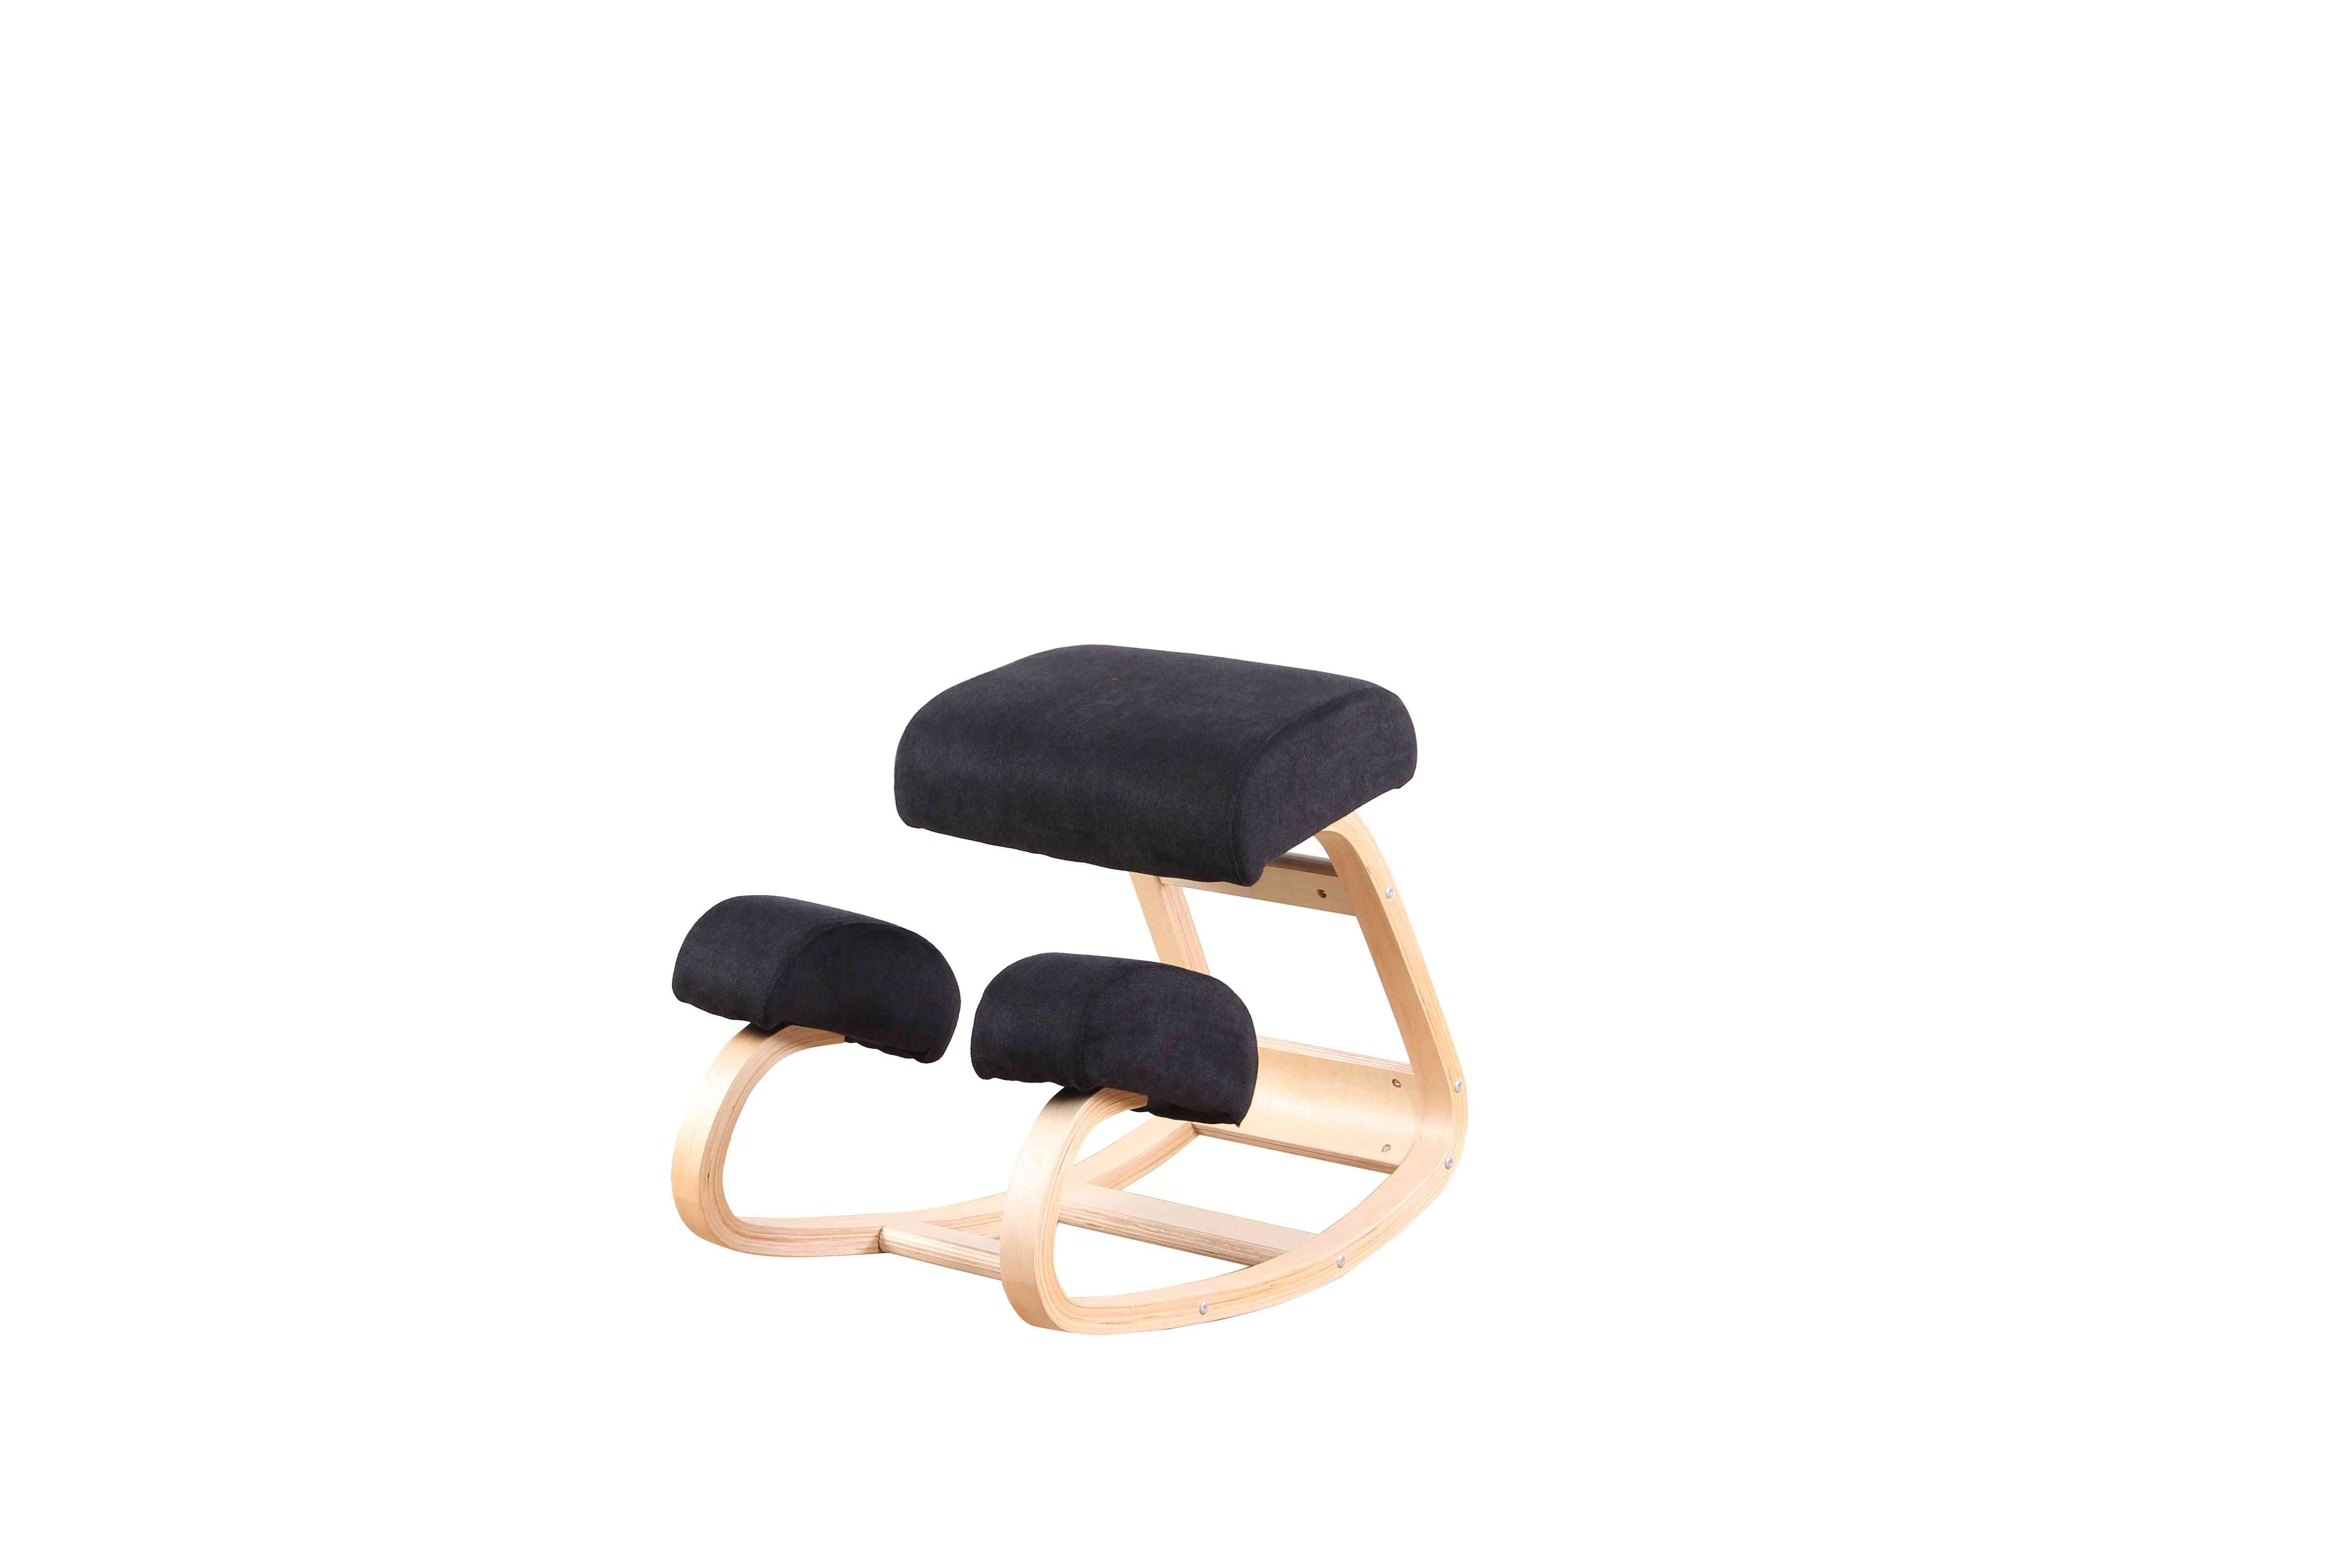 Ergonomic Kneeling Chair, Knee Stool For Better Posture And Stress Relief